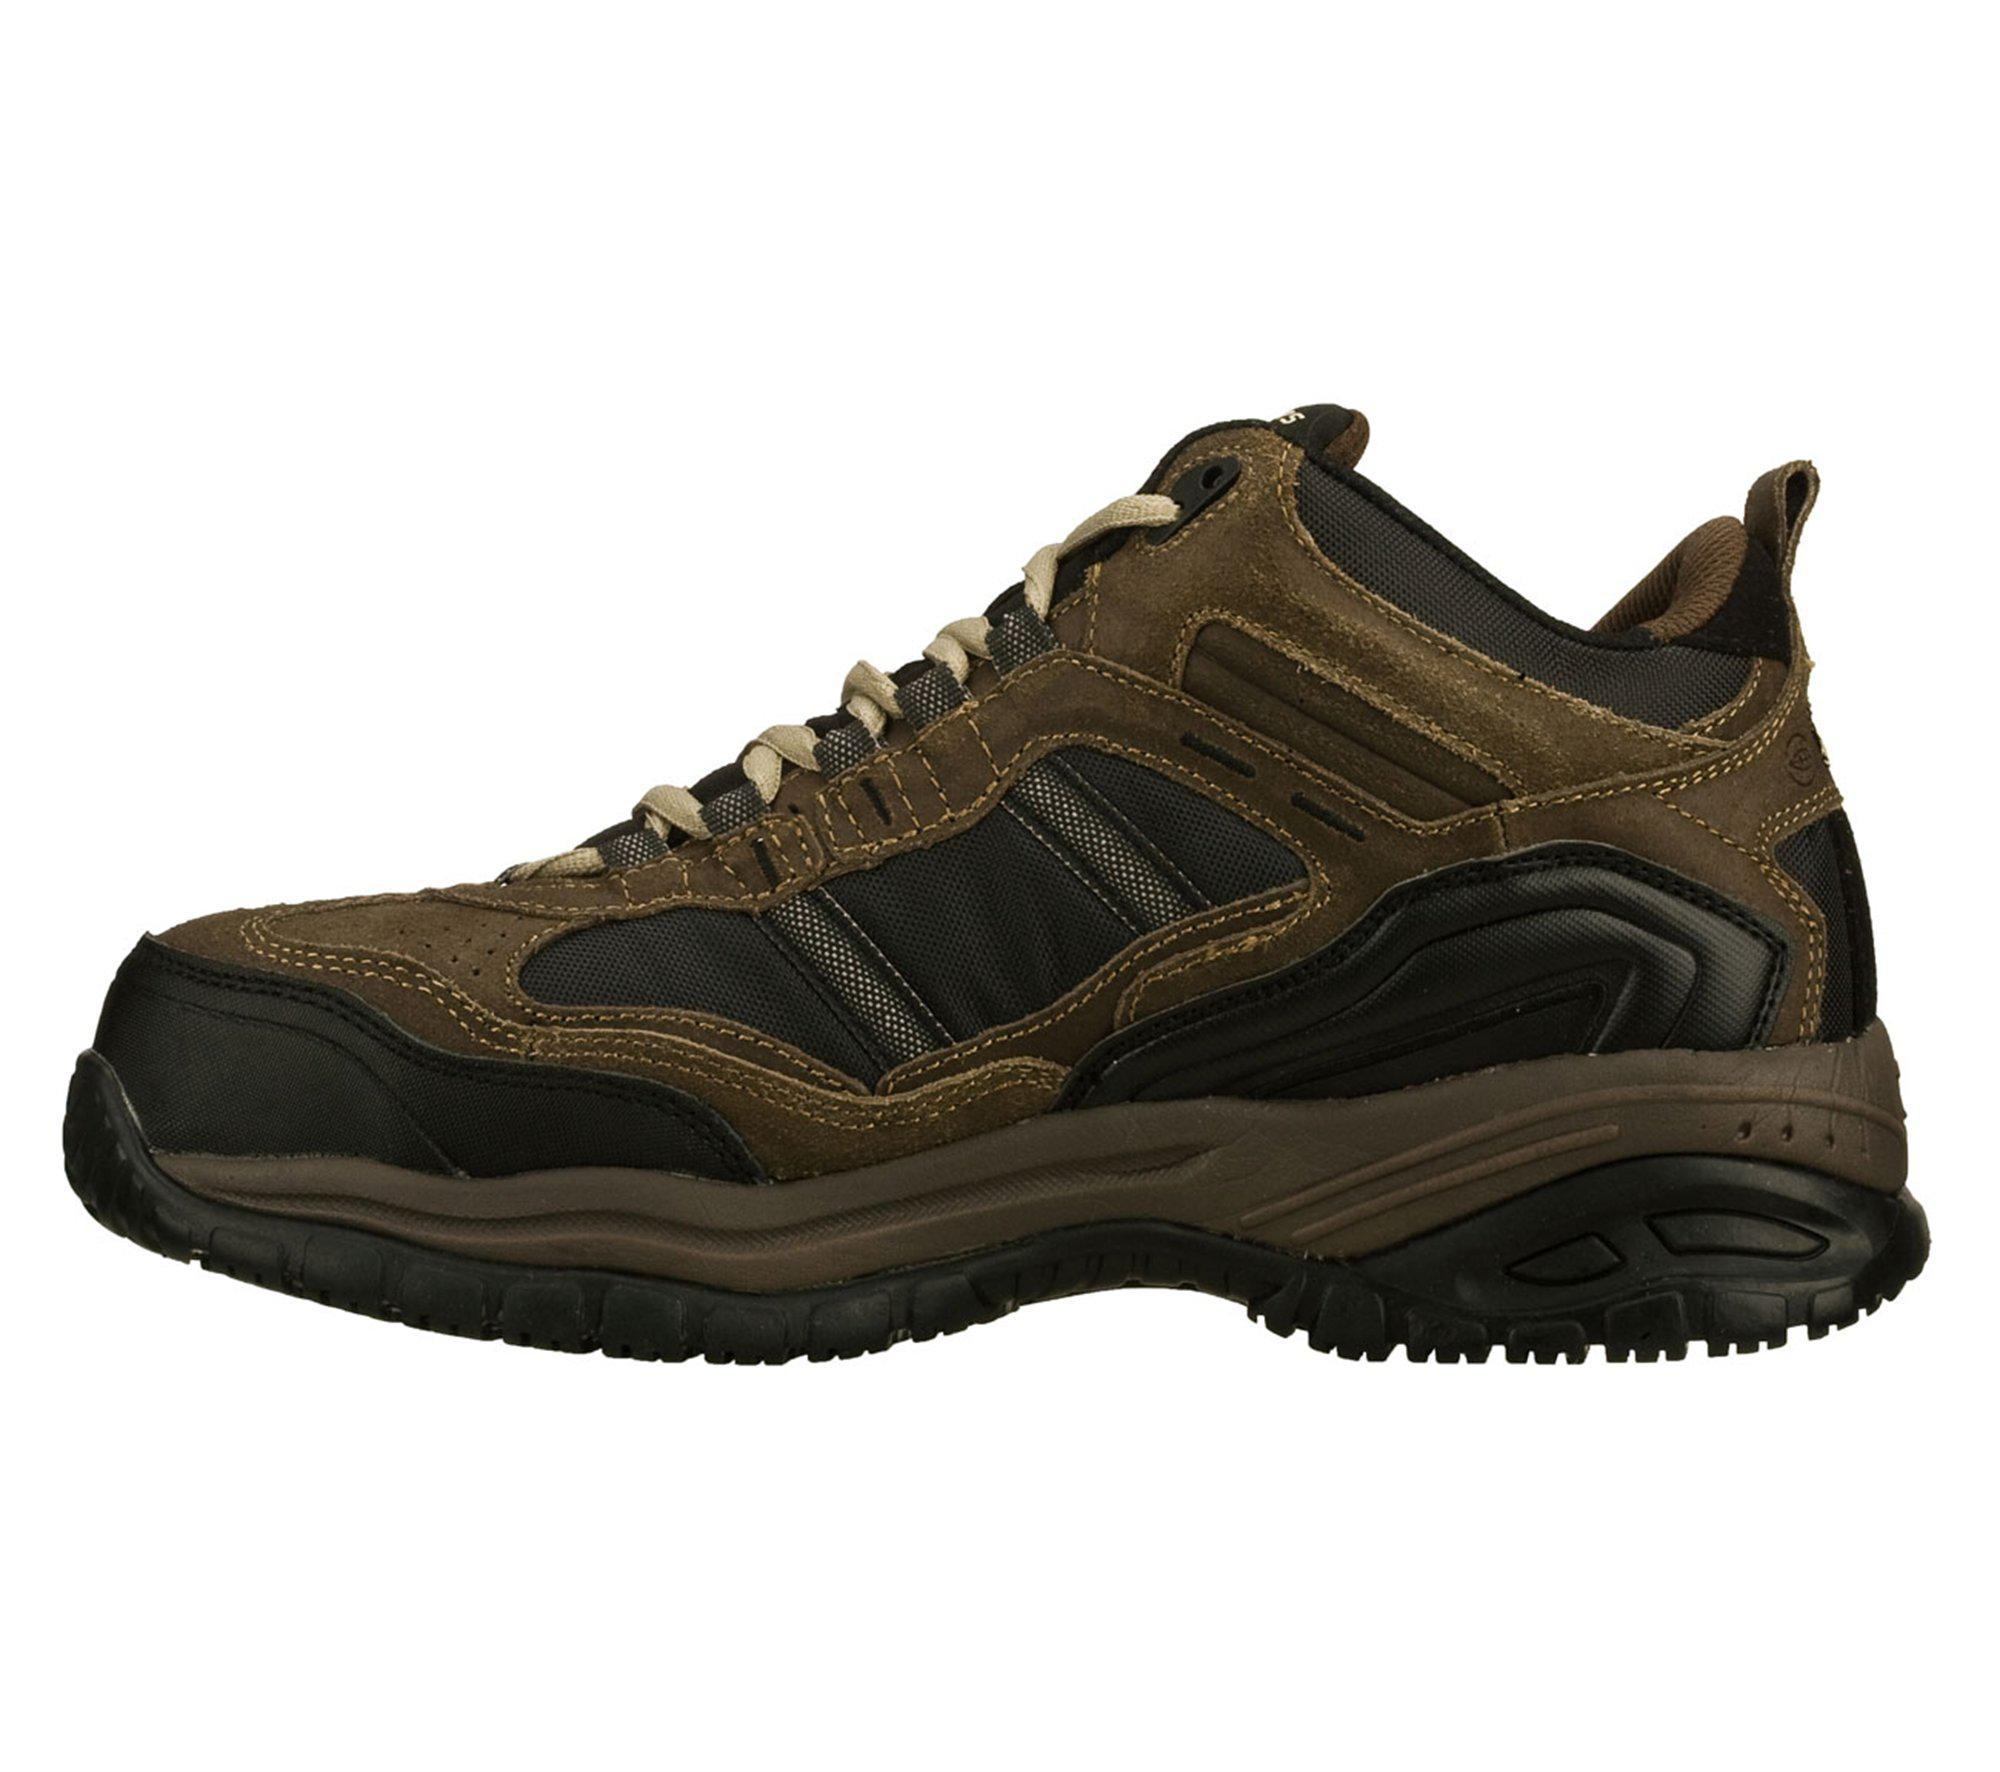 f79f90fbd6ba1 Skechers - Multicolor Work Relaxed Fit: Soft Stride - Canopy Comp Toe for  Men -. View fullscreen